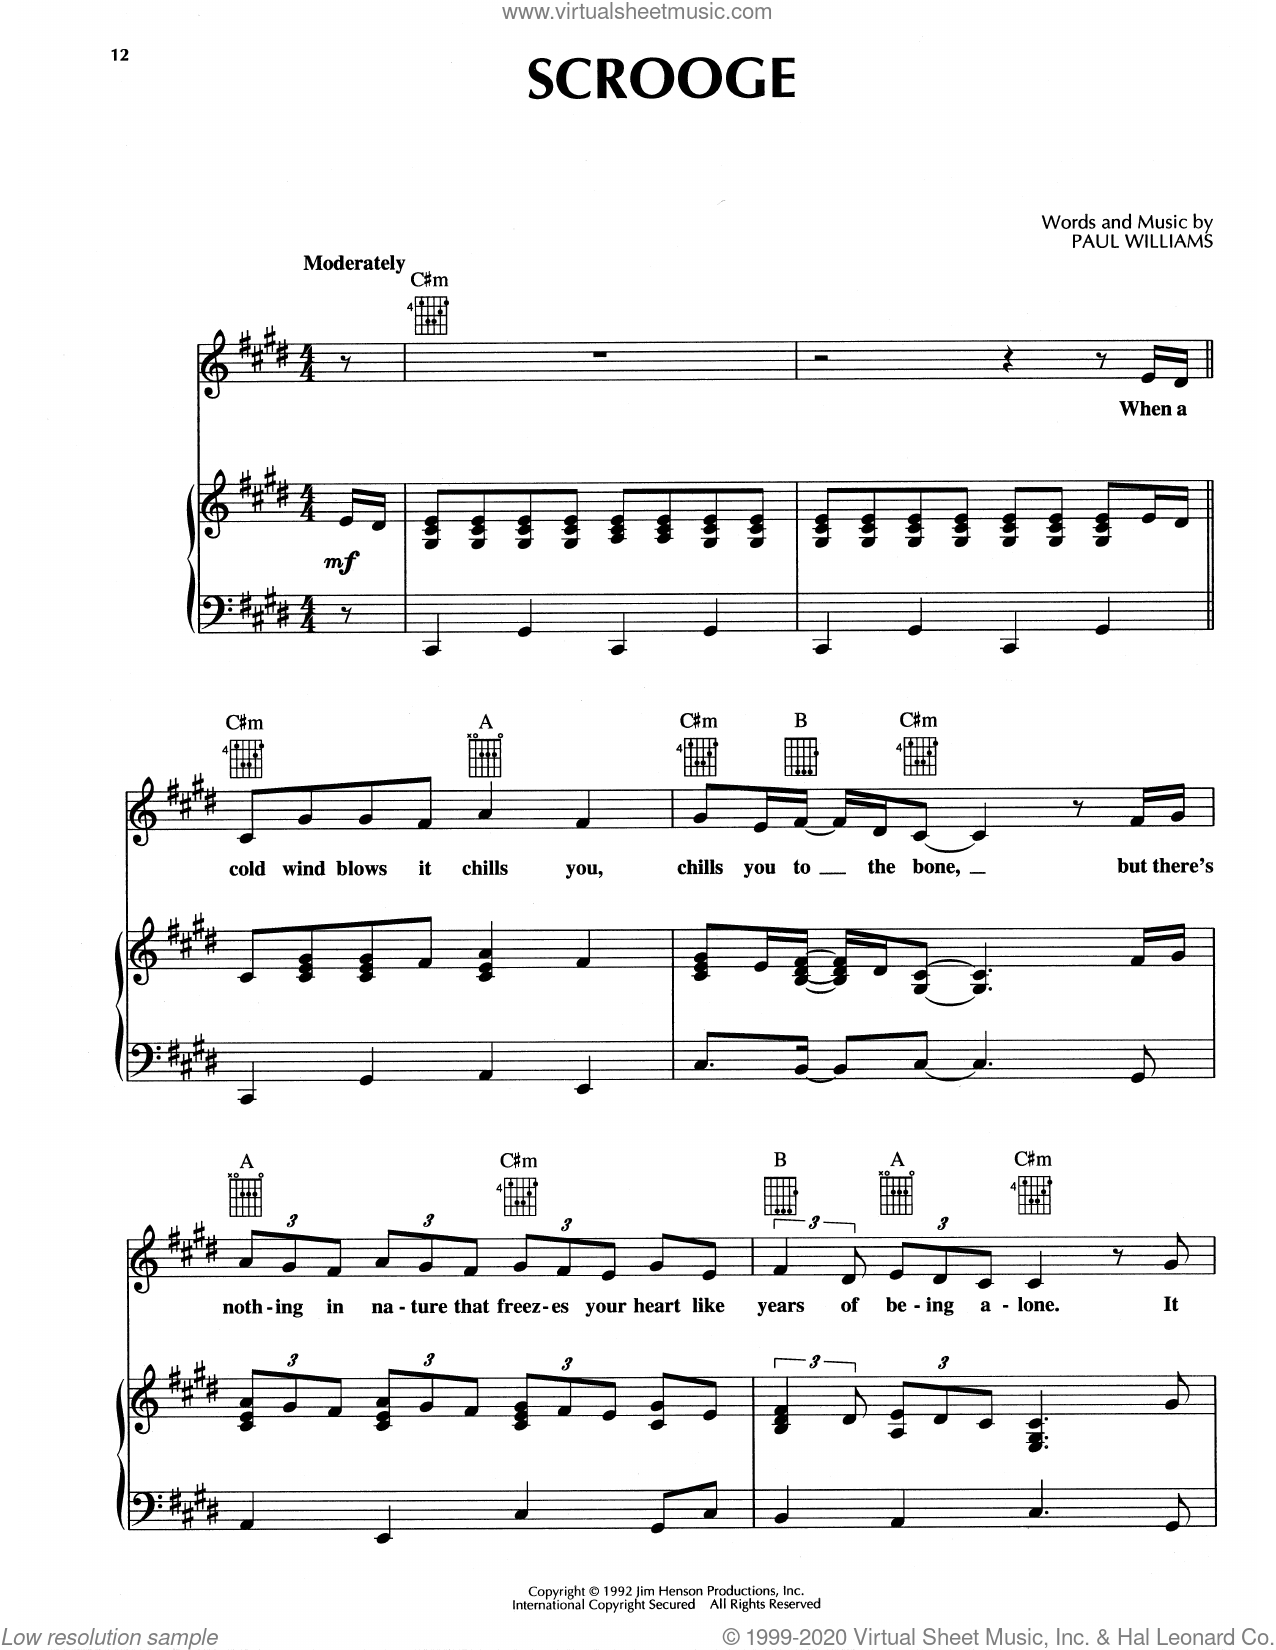 Scrooge (from The Muppet Christmas Carol) sheet music for voice, piano or guitar by Paul Williams, intermediate skill level